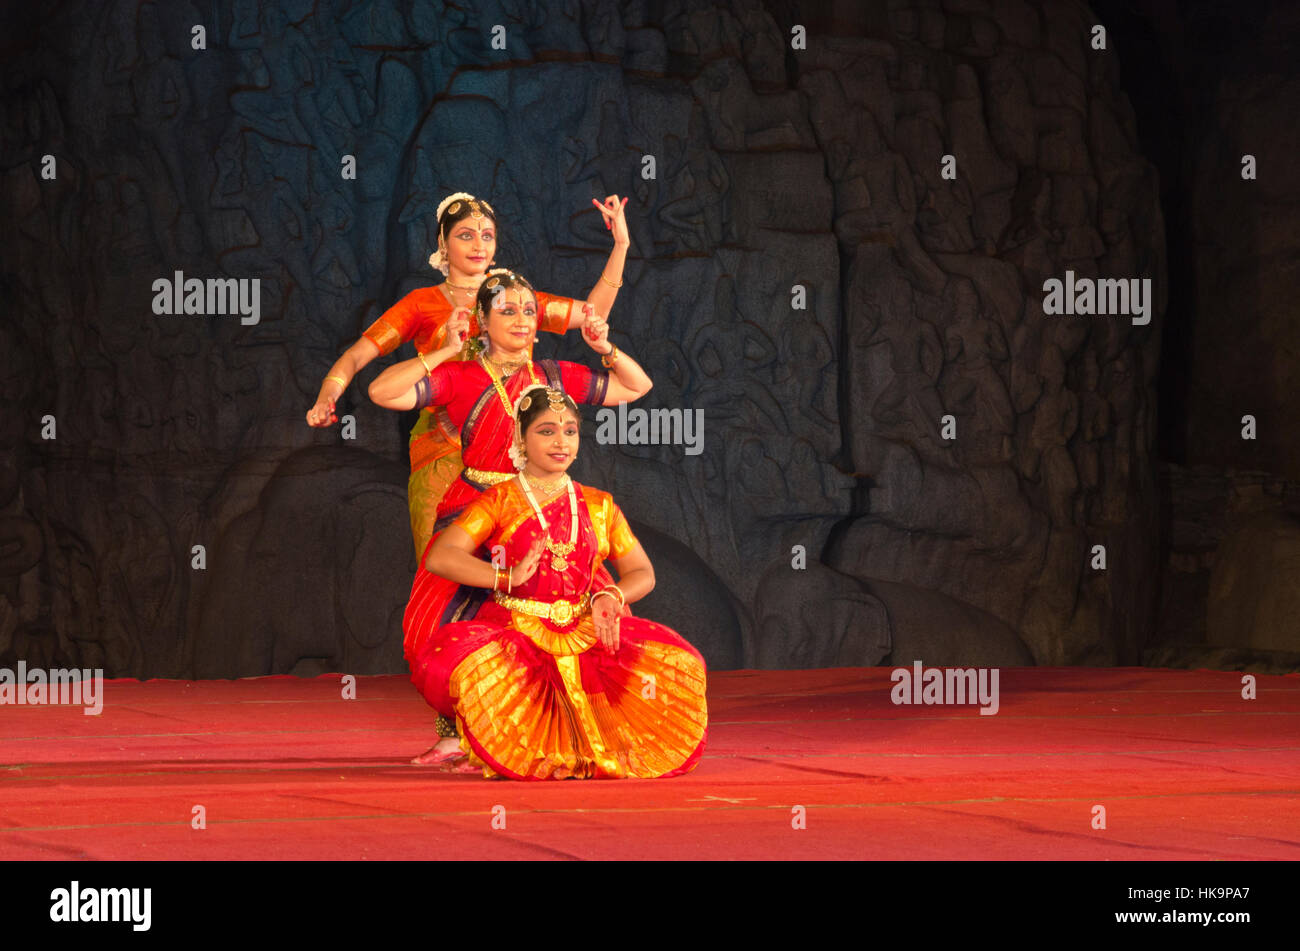 Classical Dances Stock Photos & Classical Dances Stock Images - Alamy